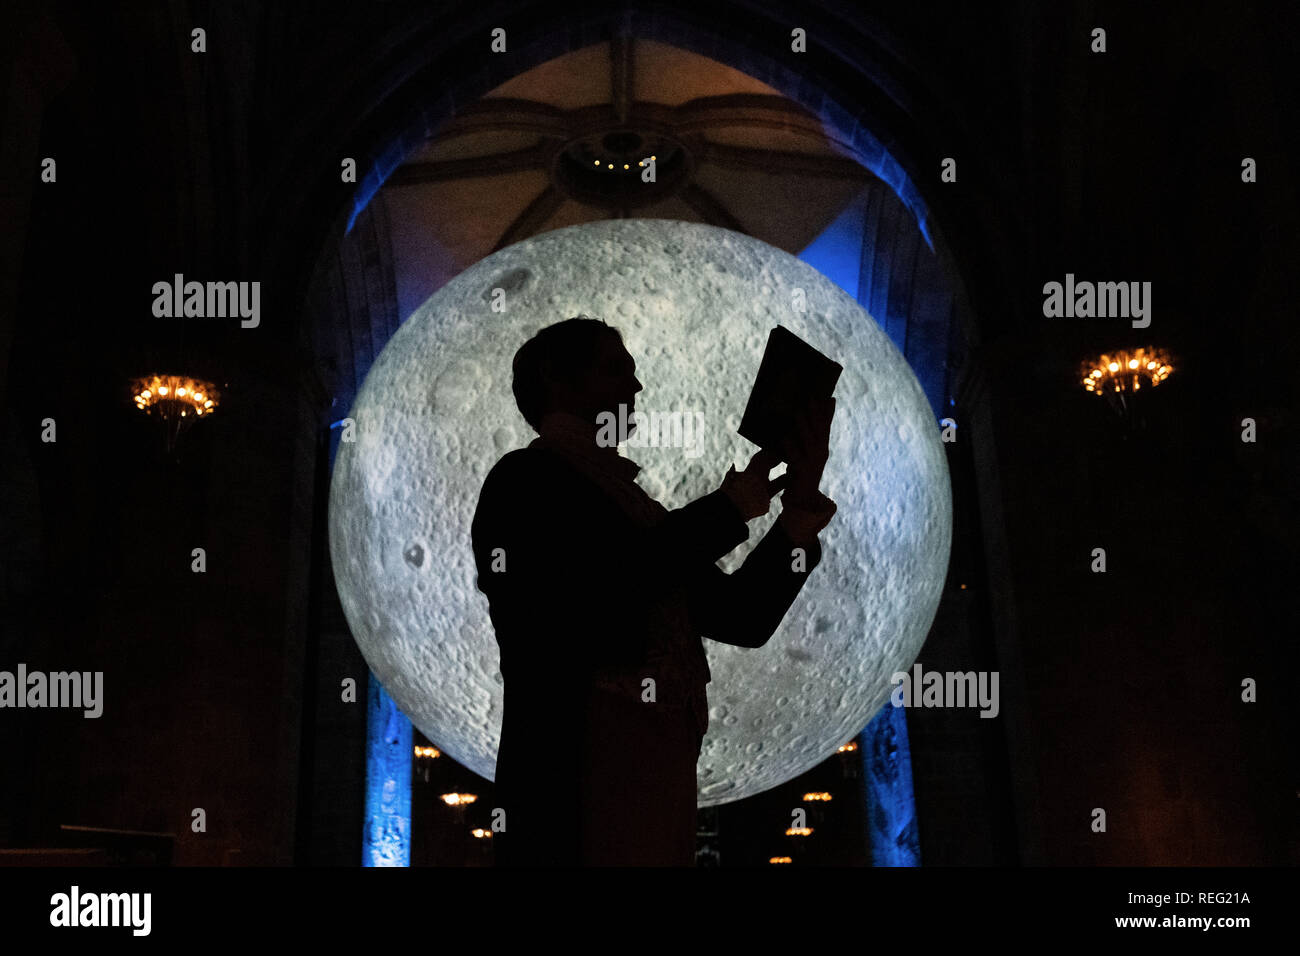 Edinburgh, Scotland, UK. 21st January 2019.  The new Burns and Beyond Festival is launched with the opening of Museum of the Moon at St Giles' Cathedral. Credit: Steven Scott Taylor/Alamy Live News - Stock Image